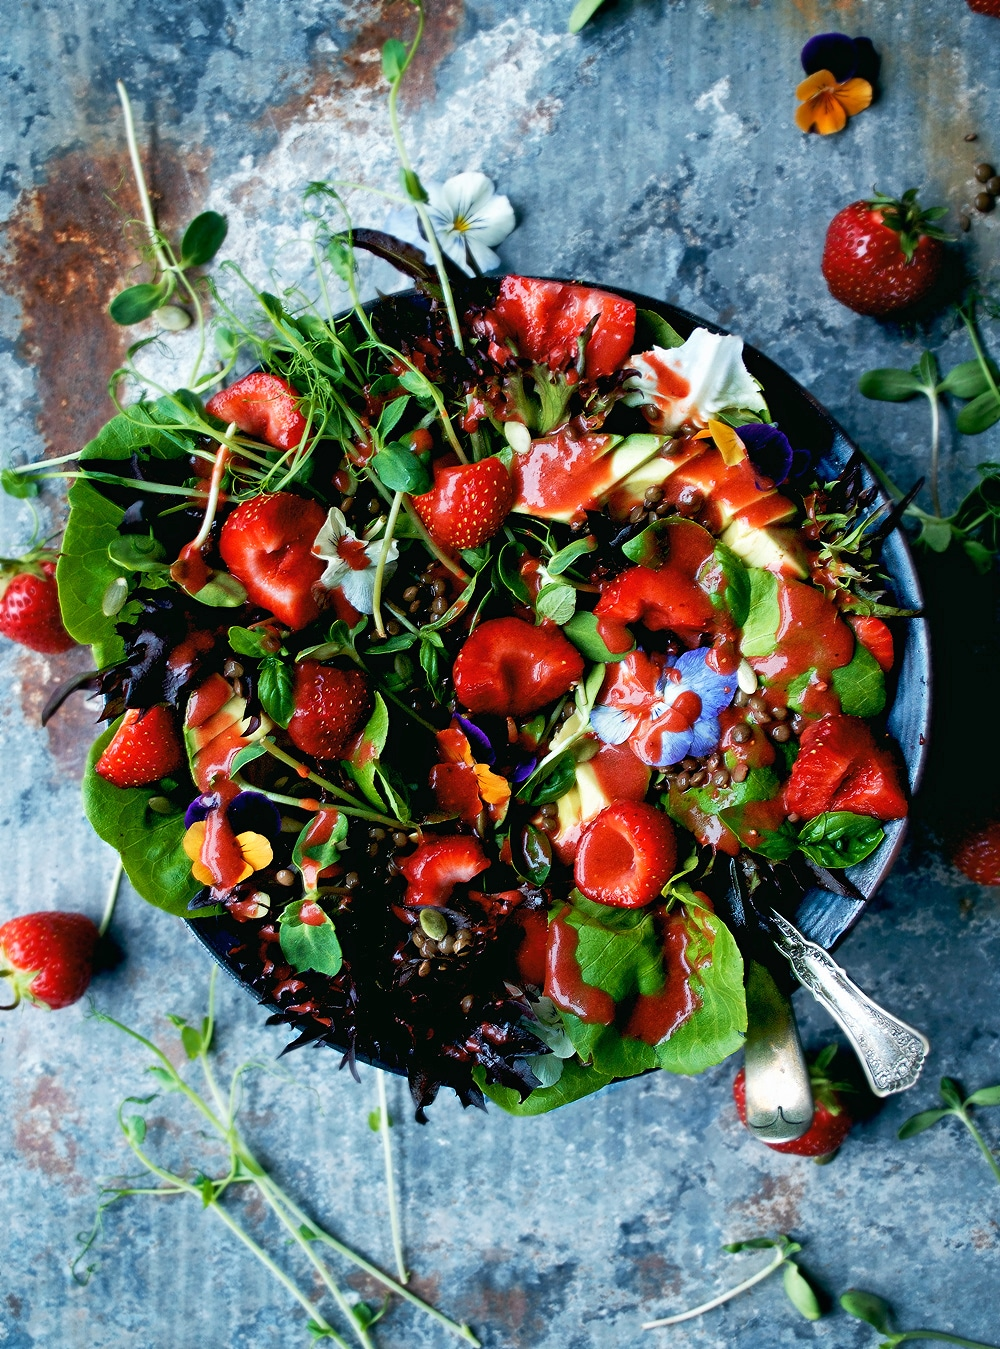 dairy free vegetarian recipes from Occassionally eggs- summer salad with strawberry vinaigrette